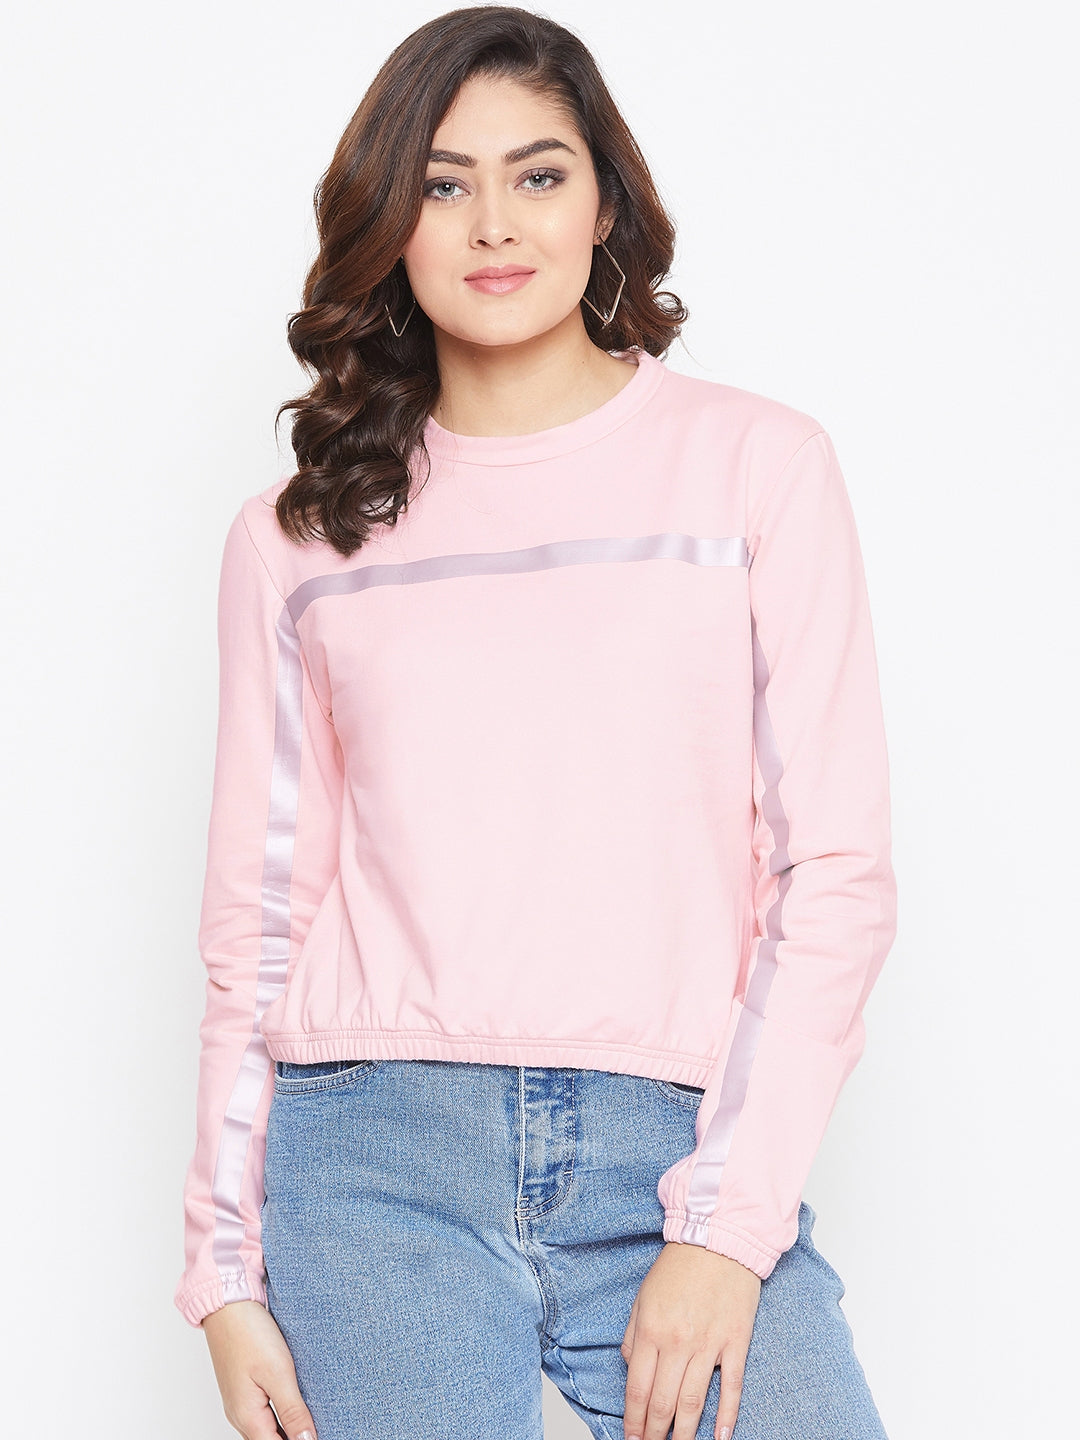 JUMP USA Women Pink Solid Sweatshirt - JUMP USA